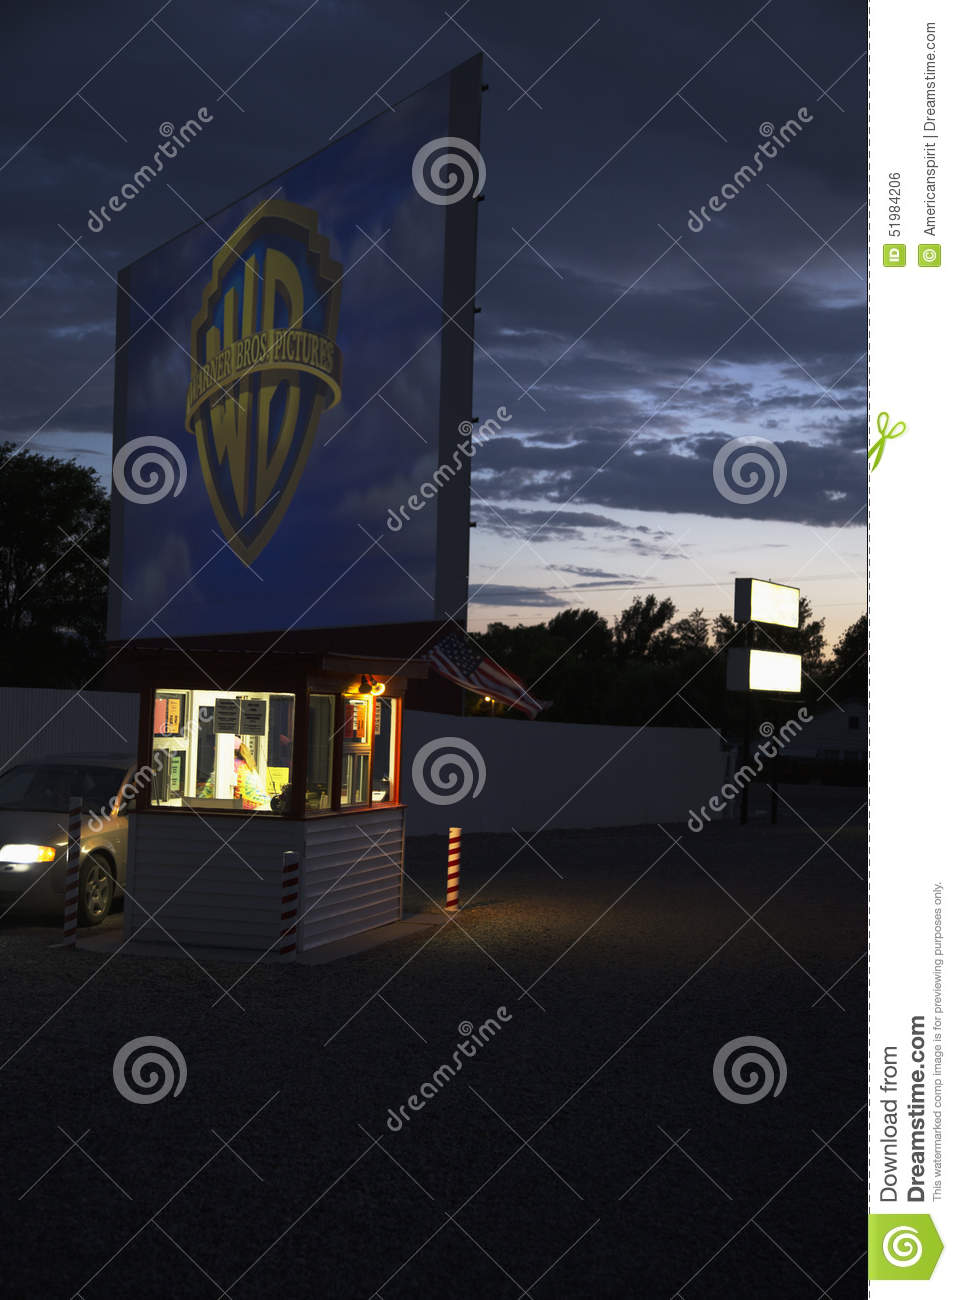 warner brothers logo projected at star drive in movie